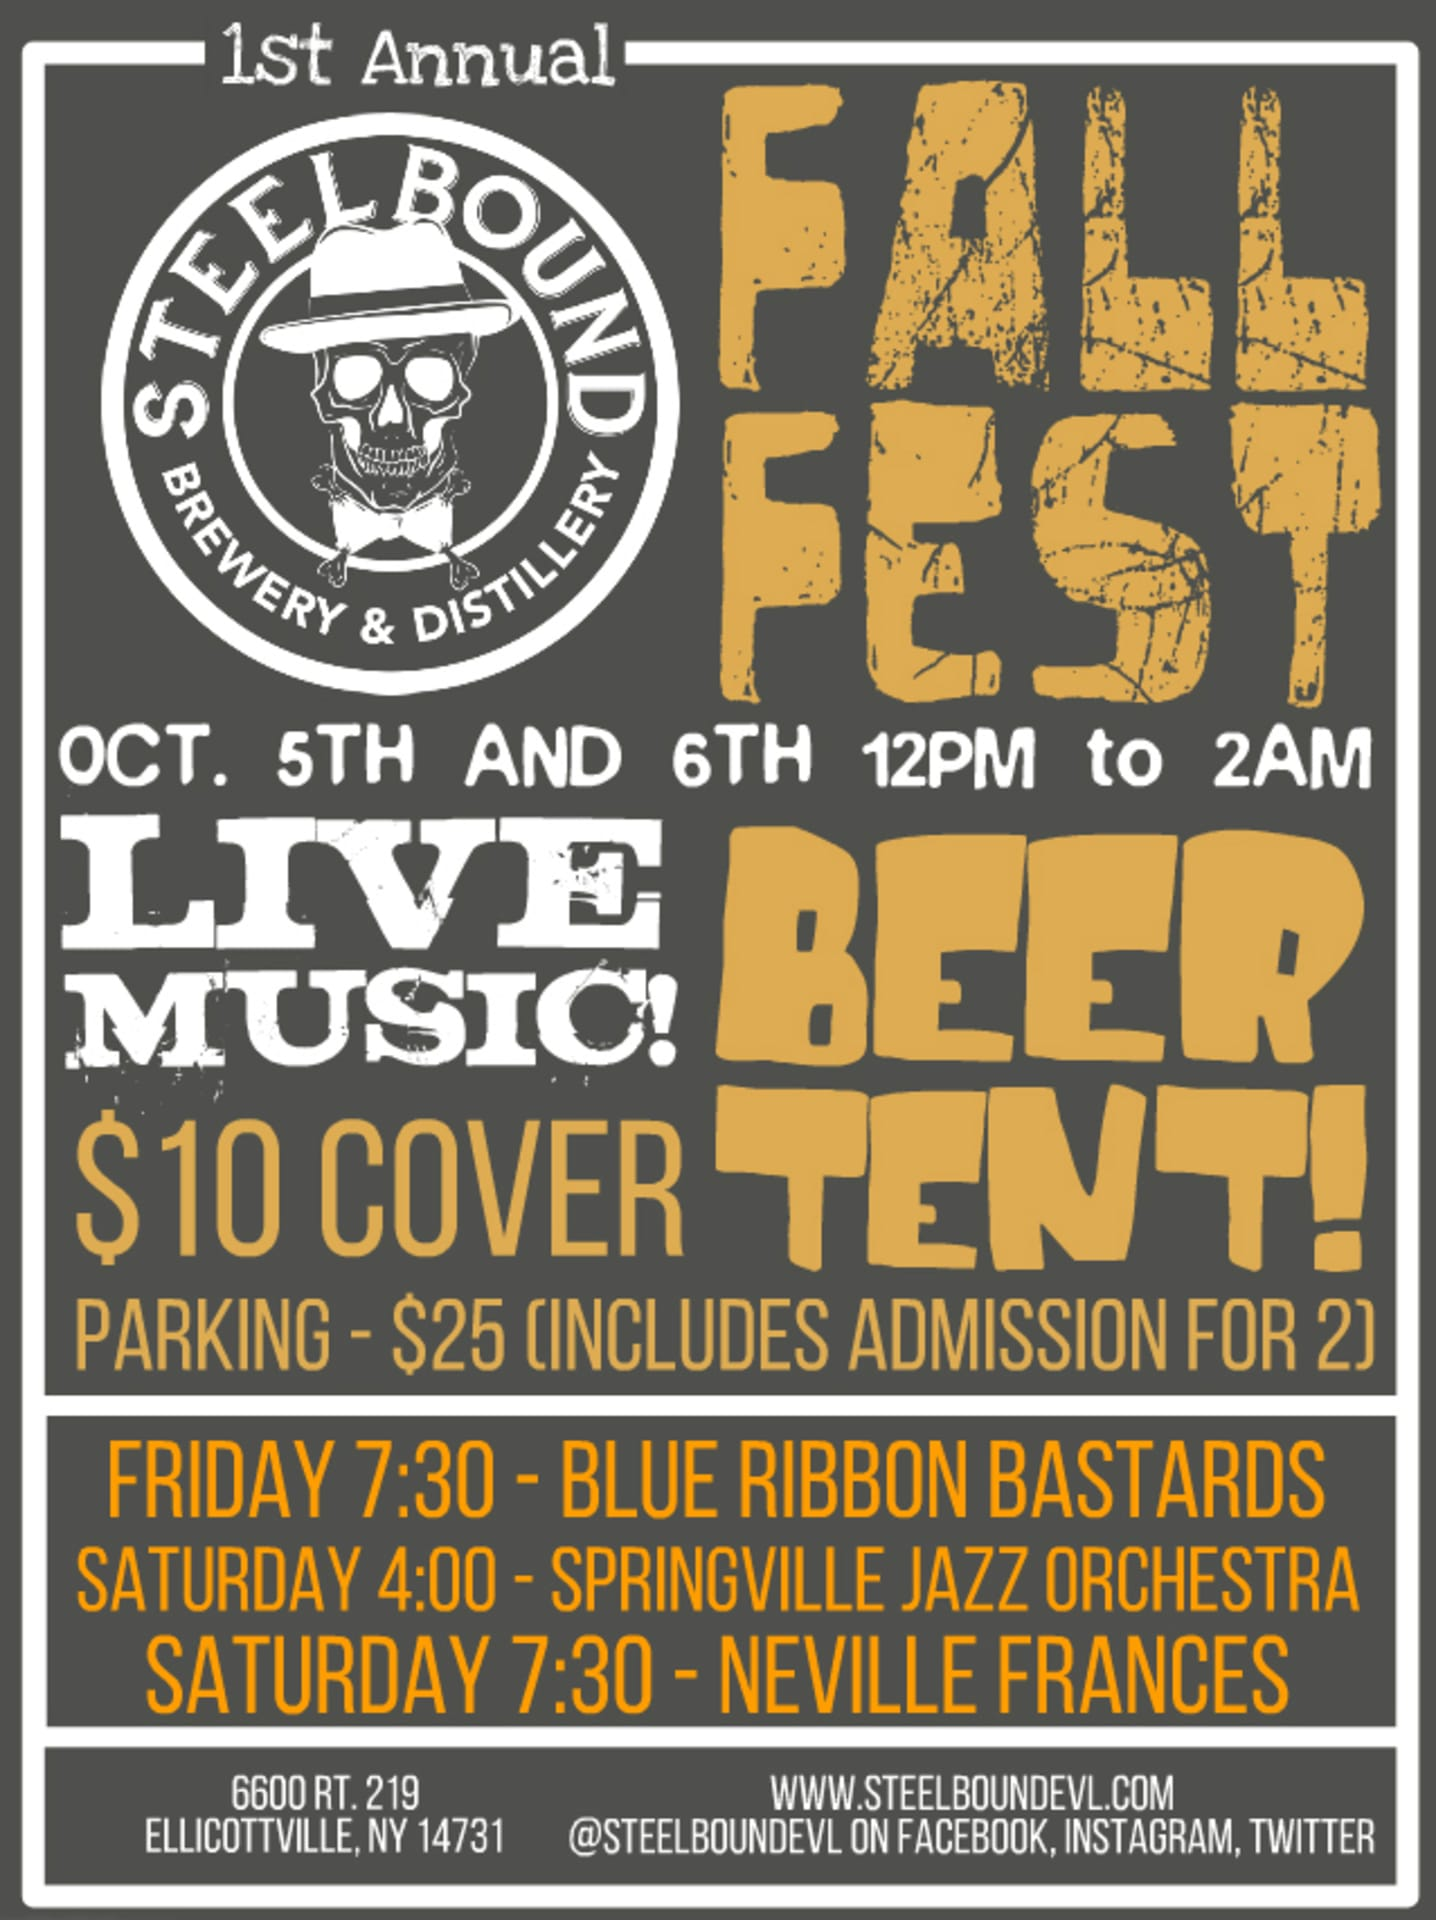 Fall Fest at Steelbound!